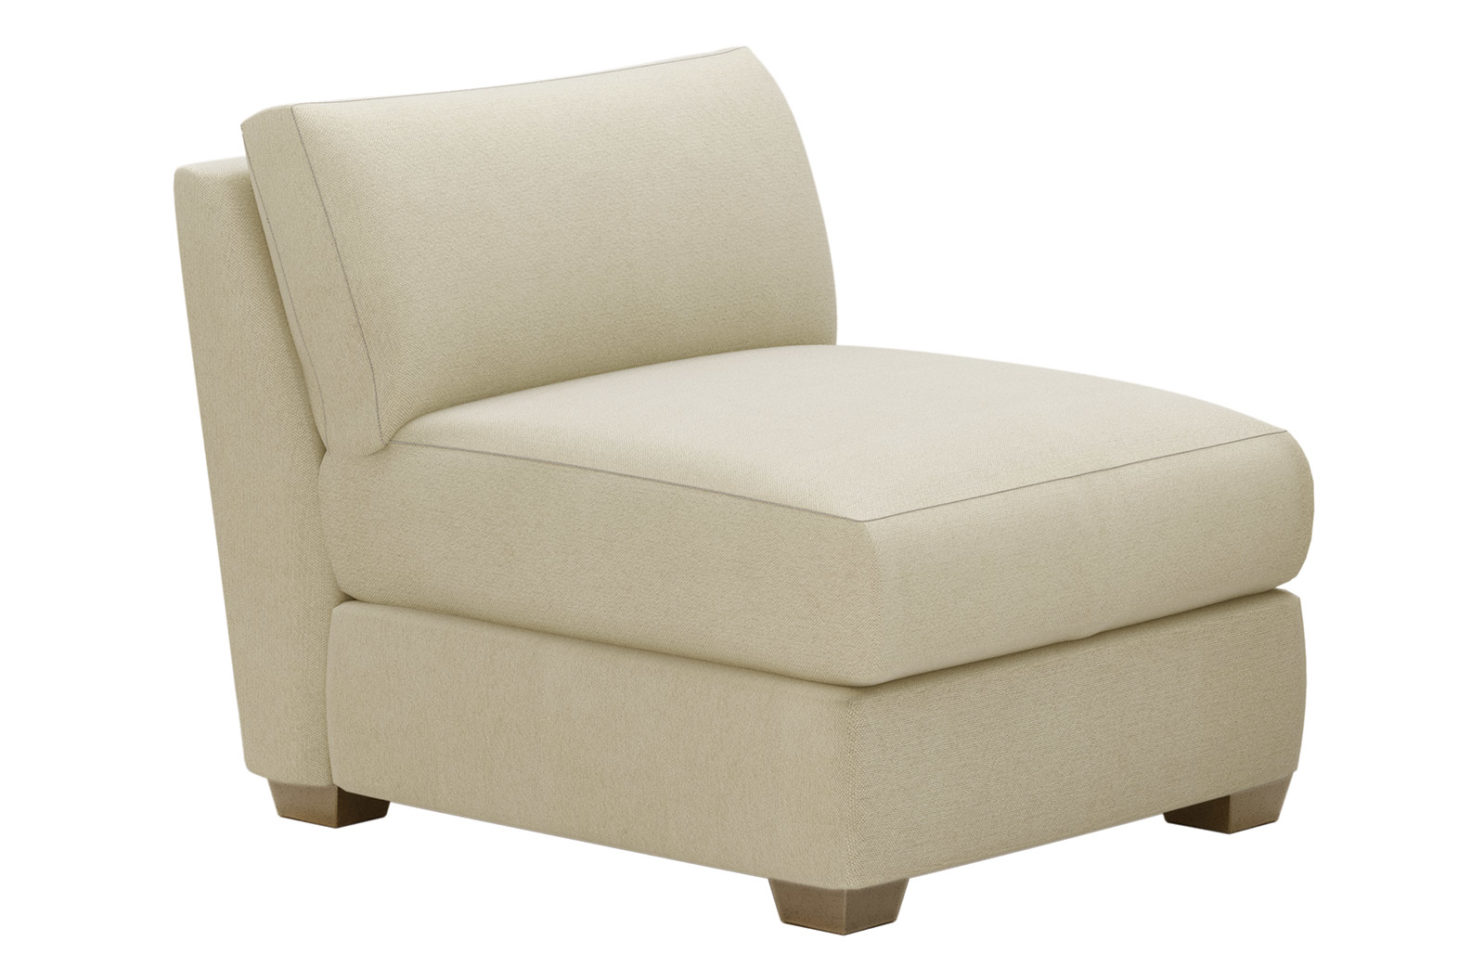 fizz imperial armless chair 105FT004P2 SSA